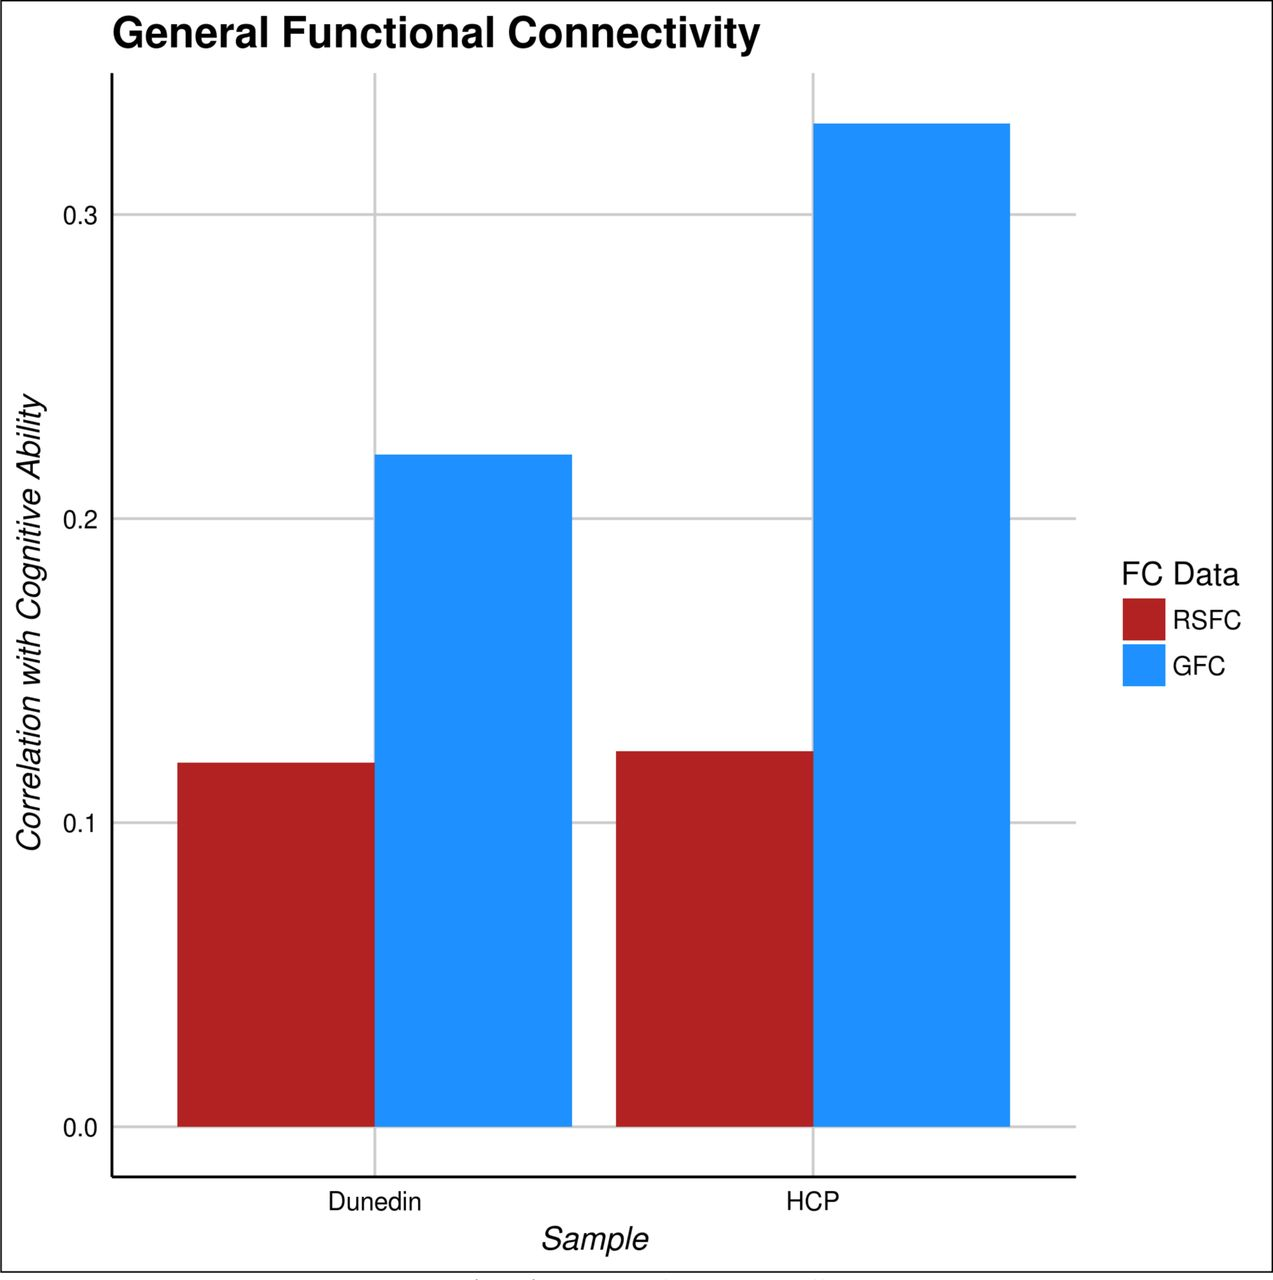 General Functional Connectivity: shared features of resting-state